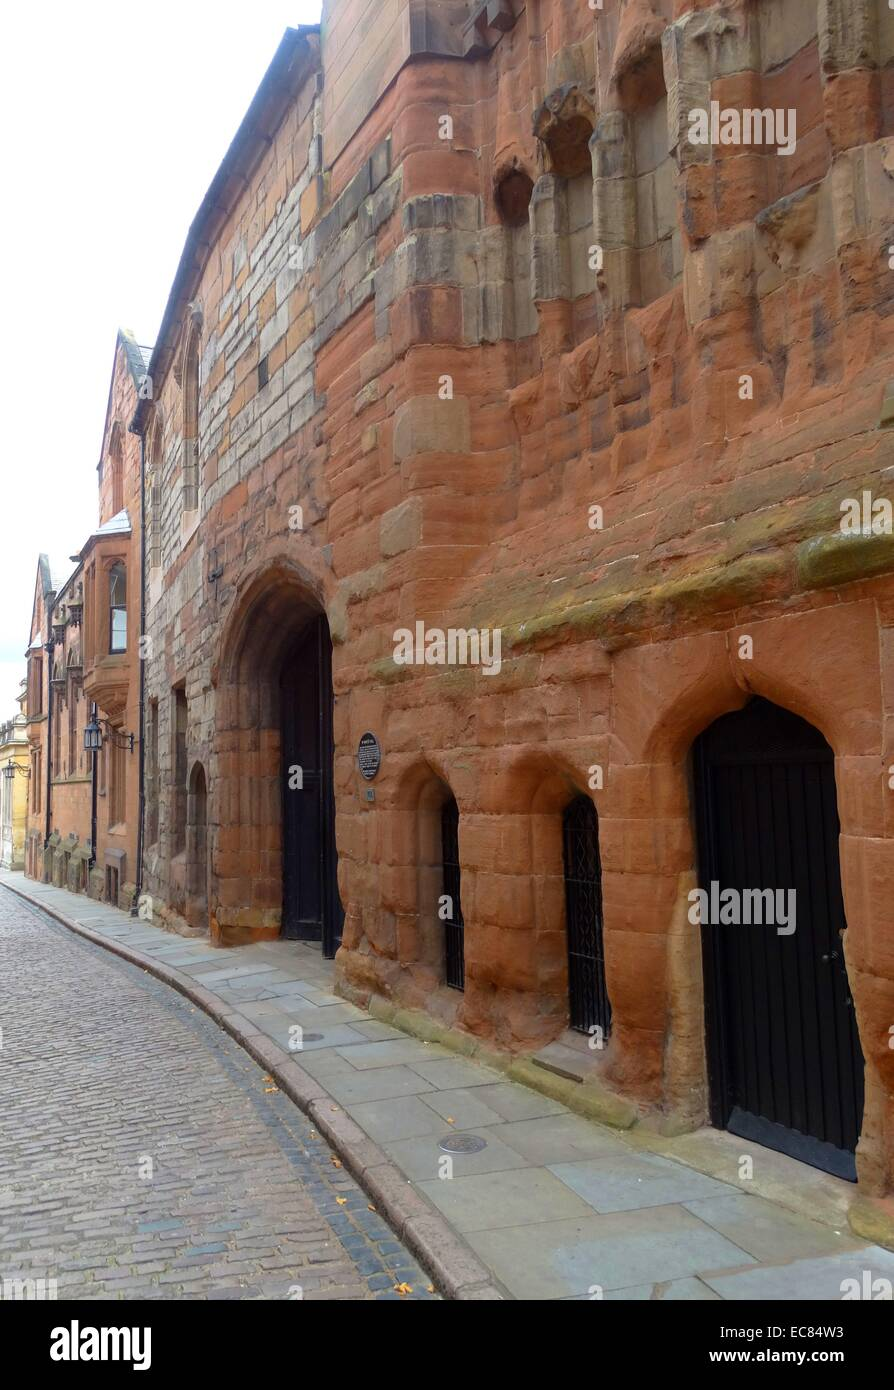 St. Mary's Hall is a guildhall built in Coventry, Warwickshire, - Stock Image